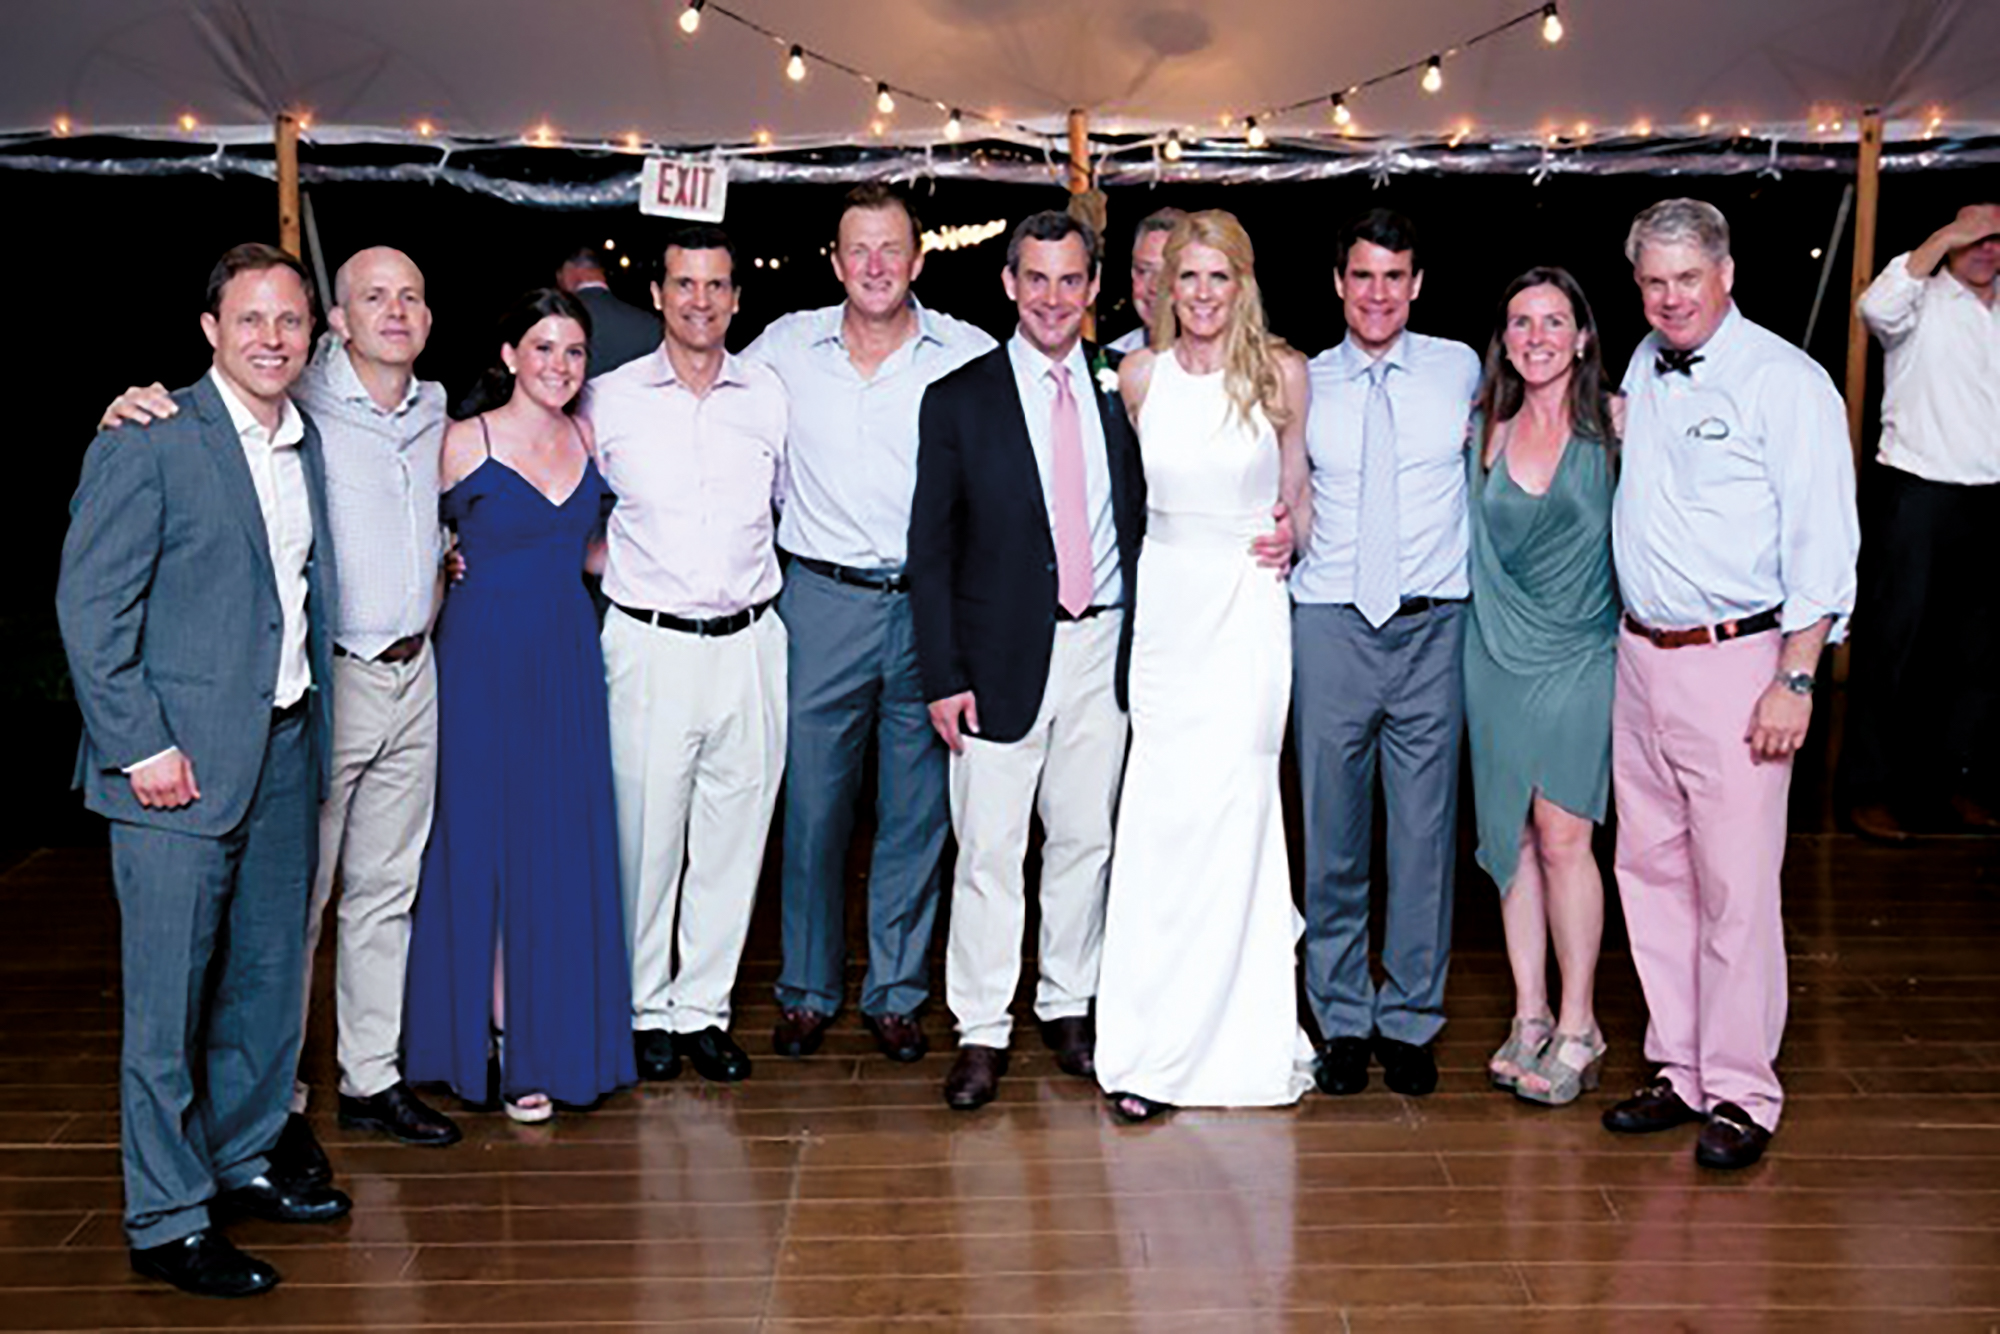 (L. to r.) Richard Baldwin '85, Sandy Osborne '89, Daphne Garrett '22, Lew Nash '85, Jack Rusher '85, Rob Garrett '85, Holly Sanderson Garrett '87, Johnsie Garrett '87, Melanie Shaw MacMillan '87, and Peter Paine '81 at the wedding of Rob and Holly.